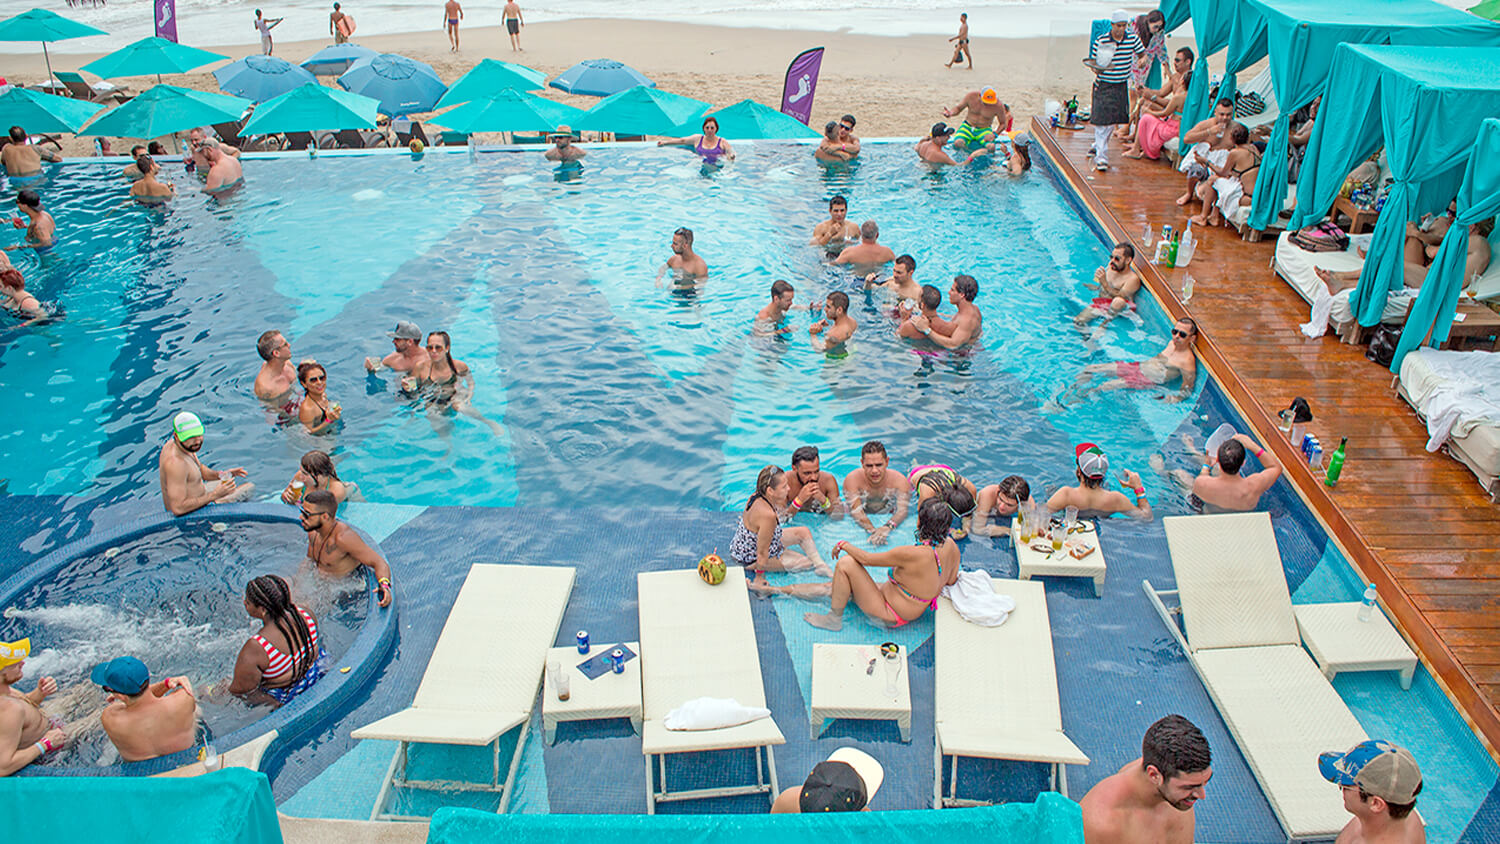 You can also visit top-most beaches in Mexico where you can participate in various beach activities like swimming, diving, sunbathing, and boat riding among other fun things.